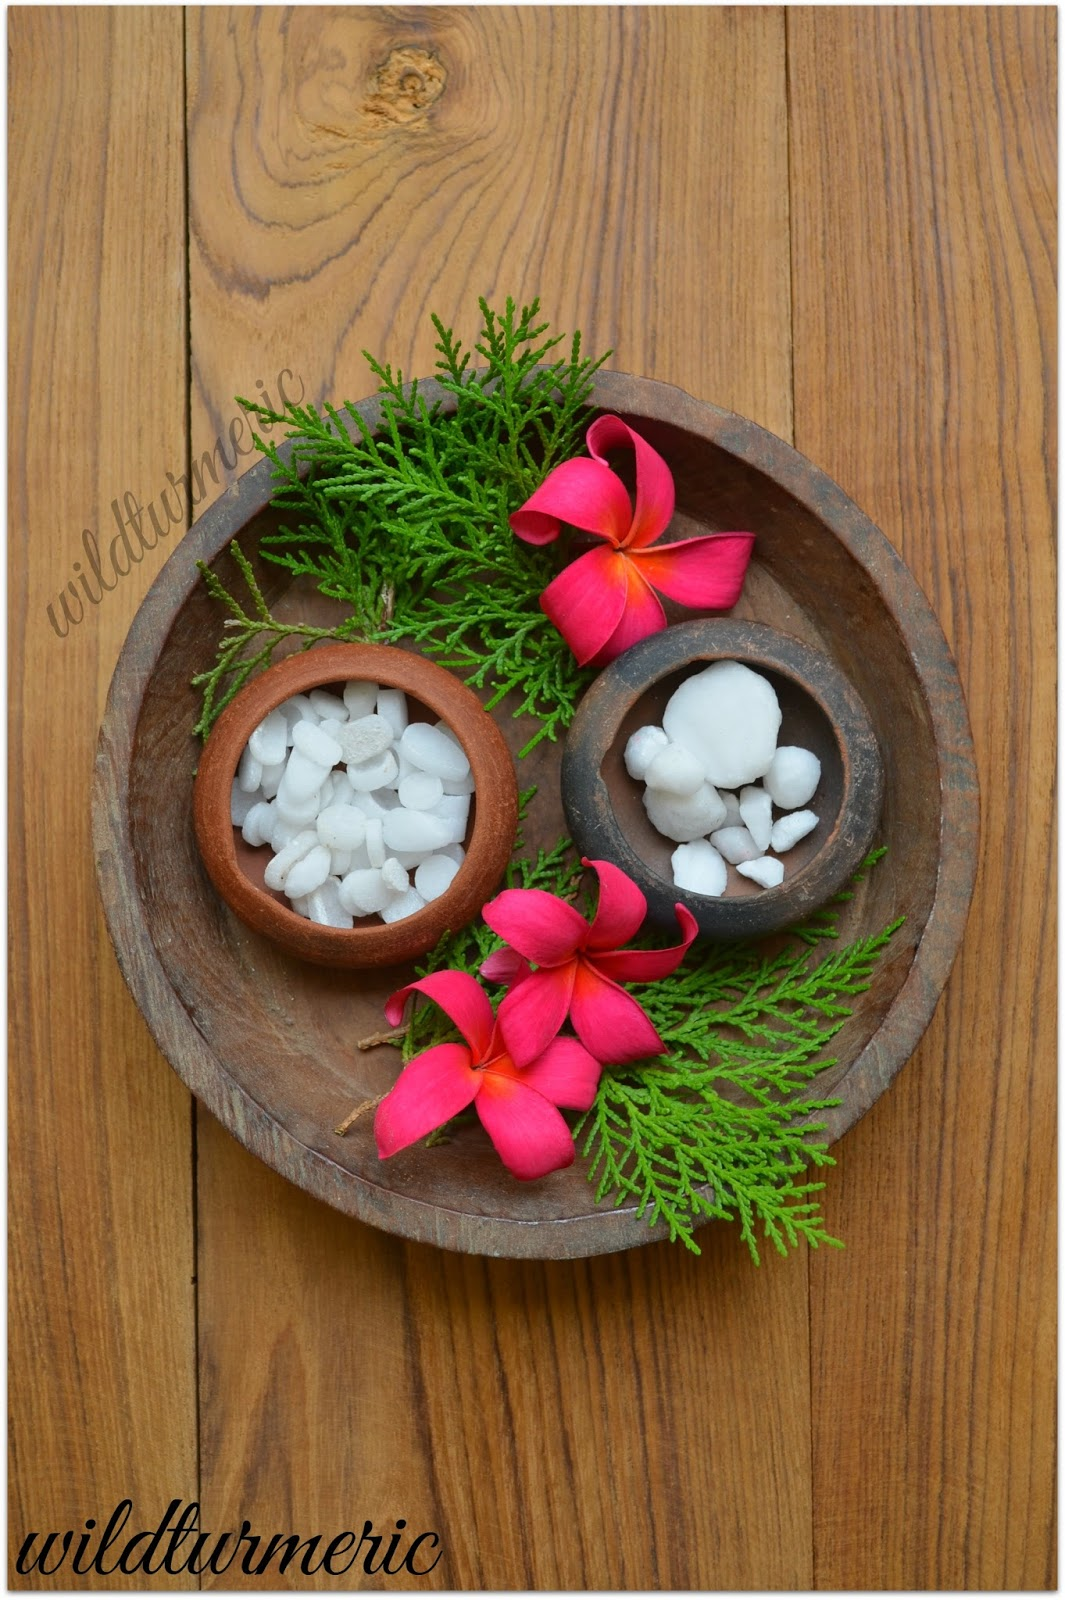 how to use camphor oil